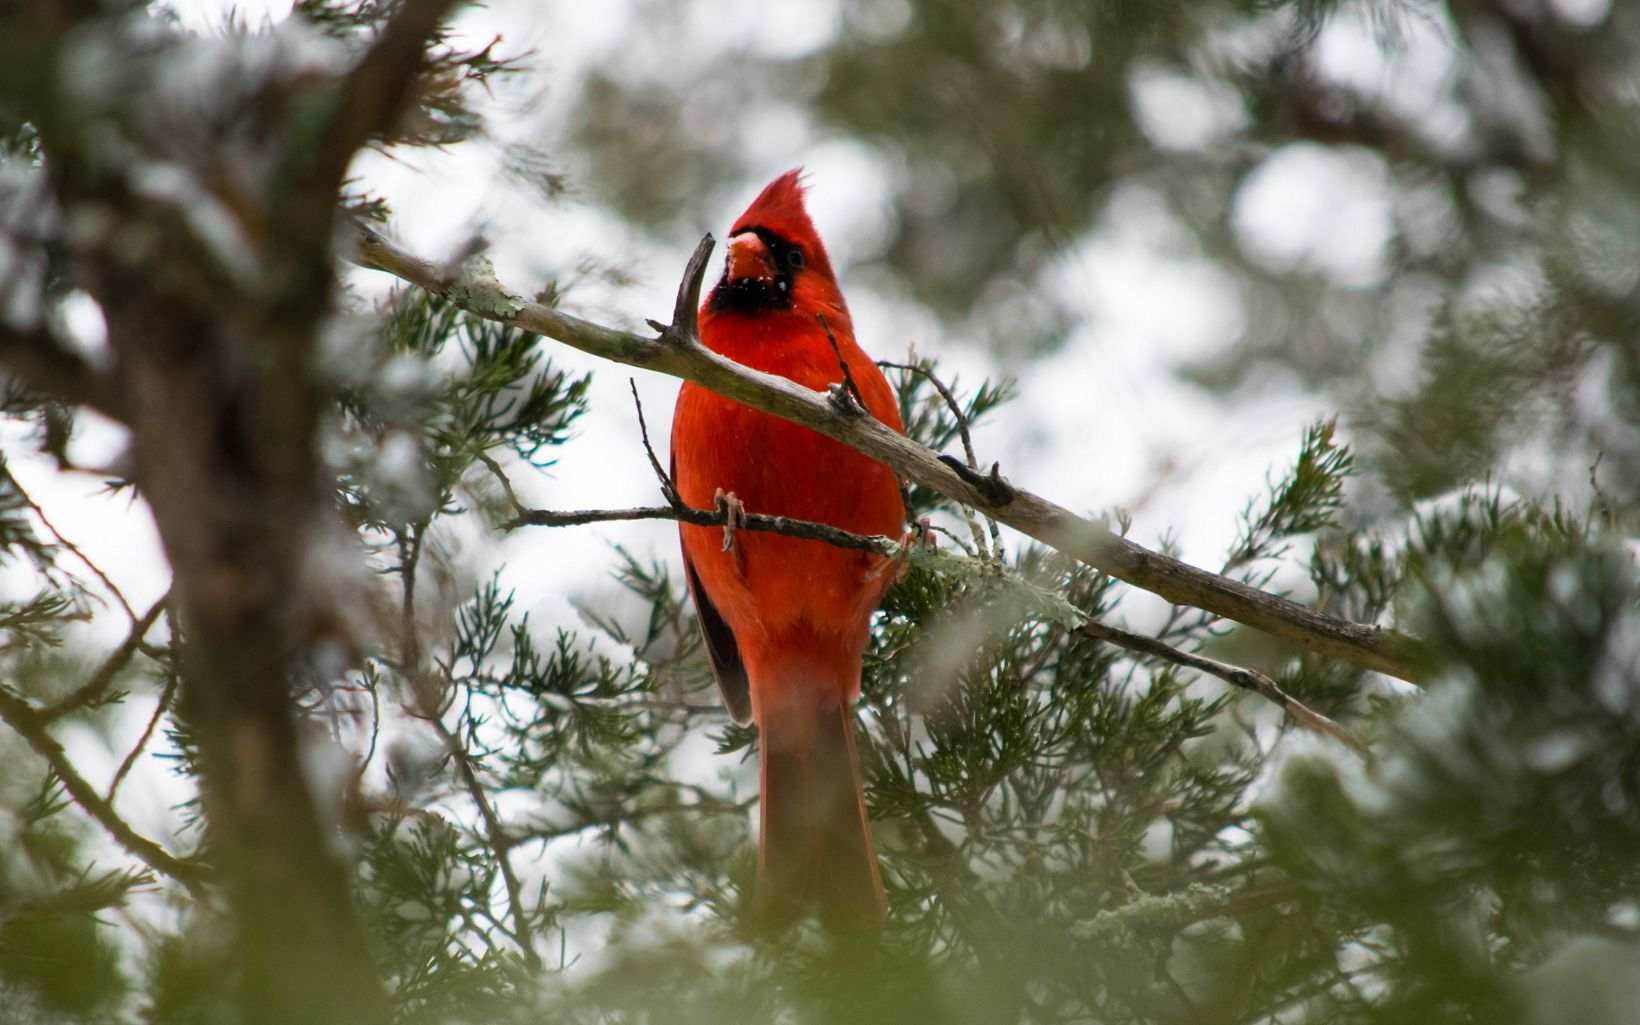 A red cardinal viewed from below through tree branches.